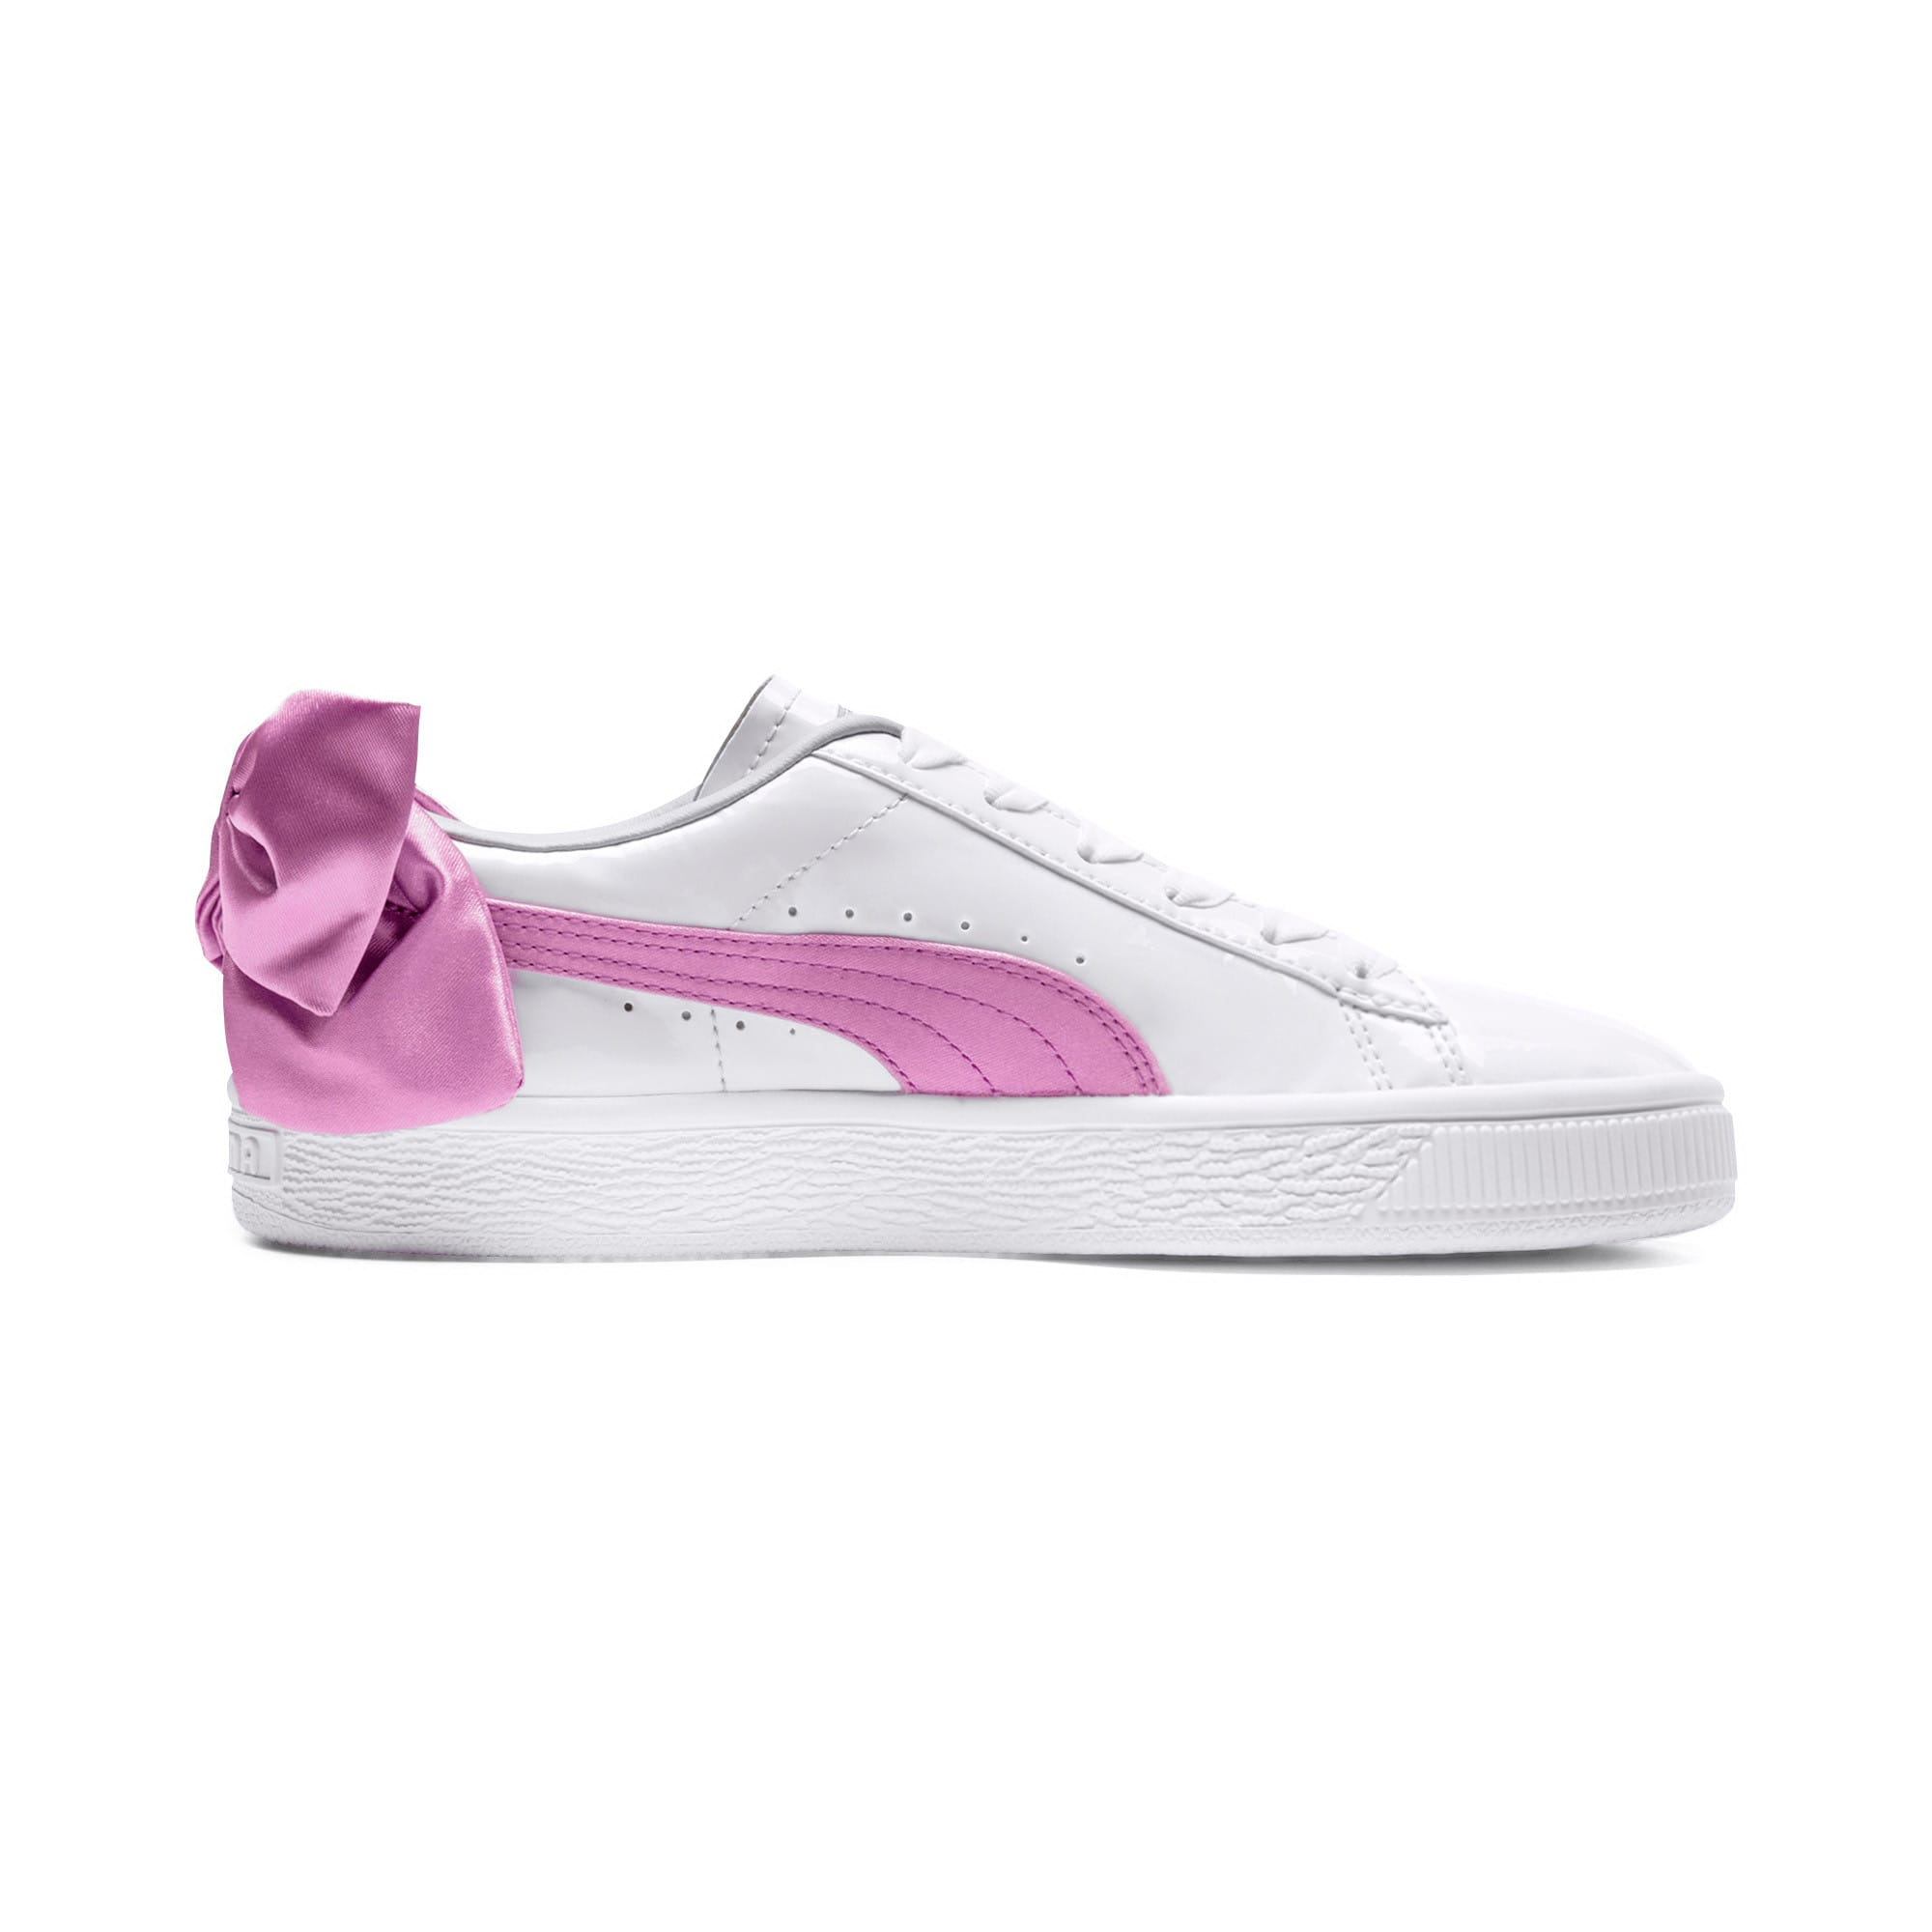 Thumbnail 5 of Basket Bow Patent Kids' Trainers, Puma White-Orchid-Gray, medium-IND